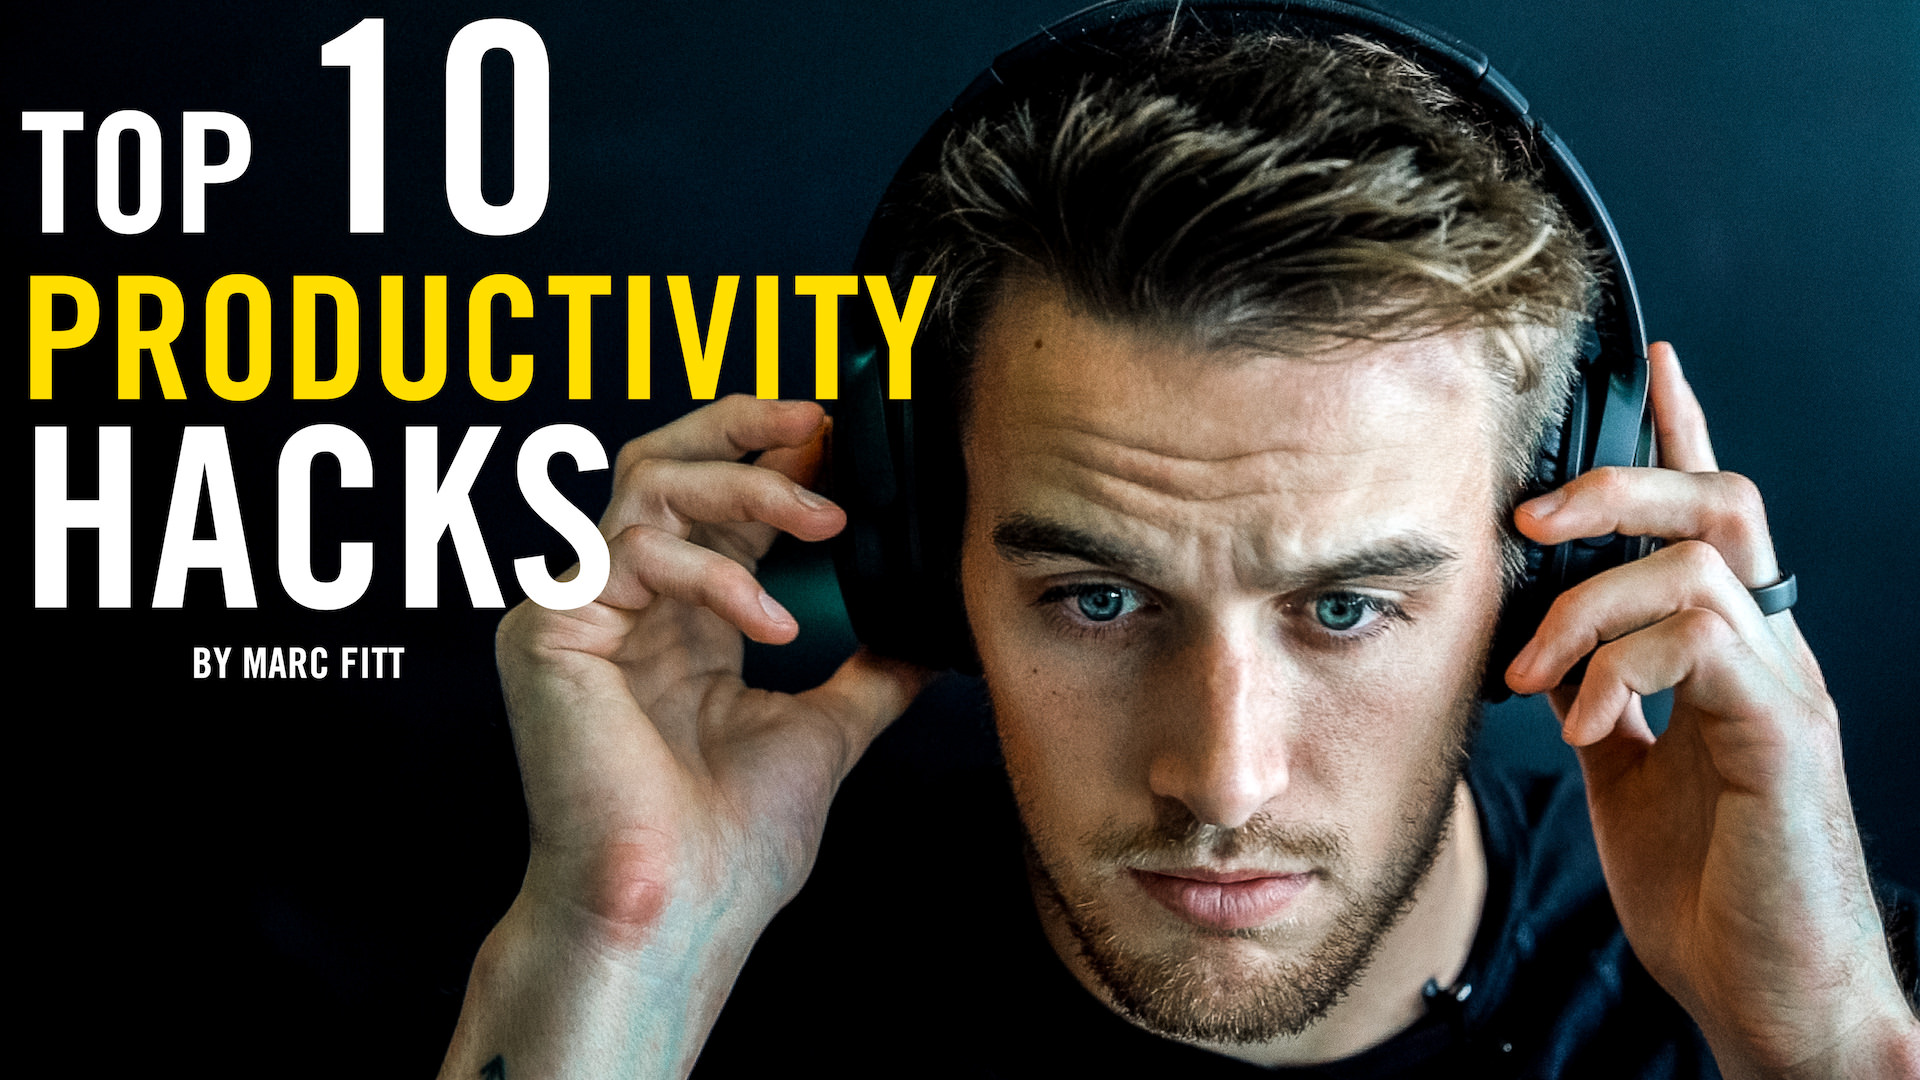 TOP 10 Productivity Hacks – Marc Fitt